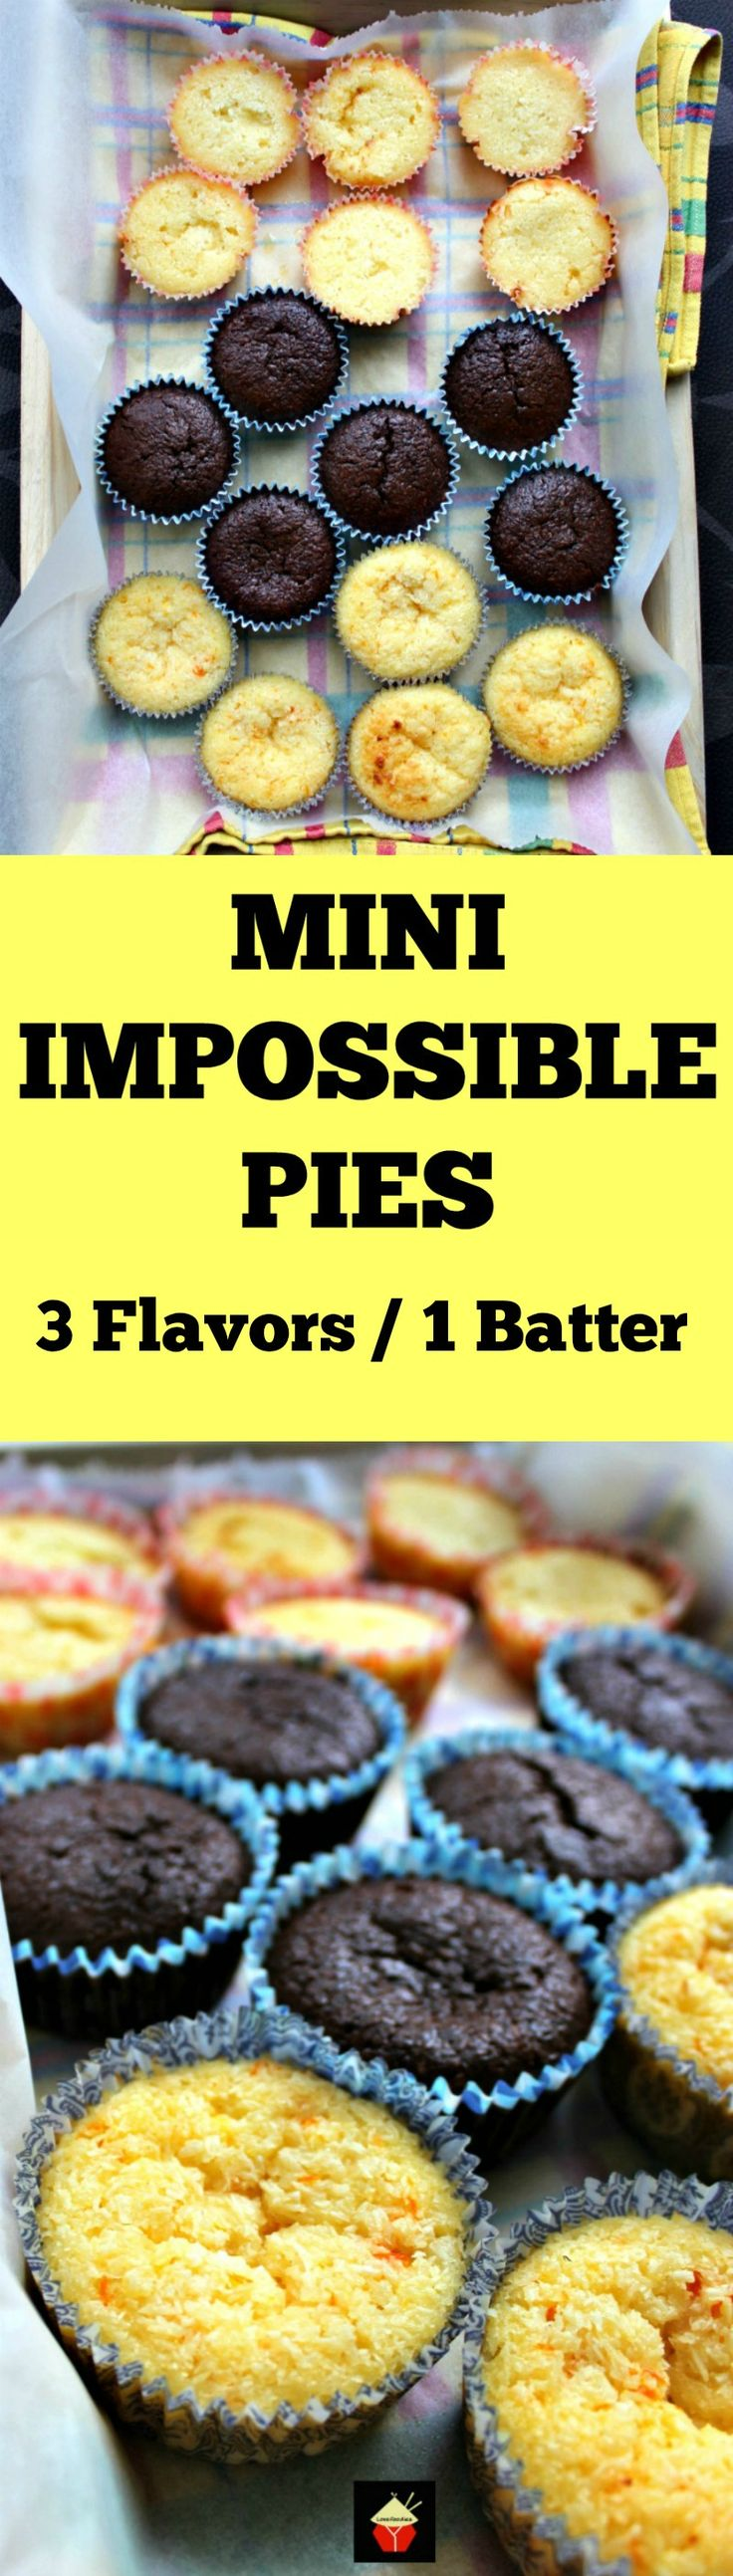 Mini Impossible Pies! Recipe for 3 different flavors using only 1 batter. Great for parties and always so popular! A really easy pie recipe. | Lovefoodies.com